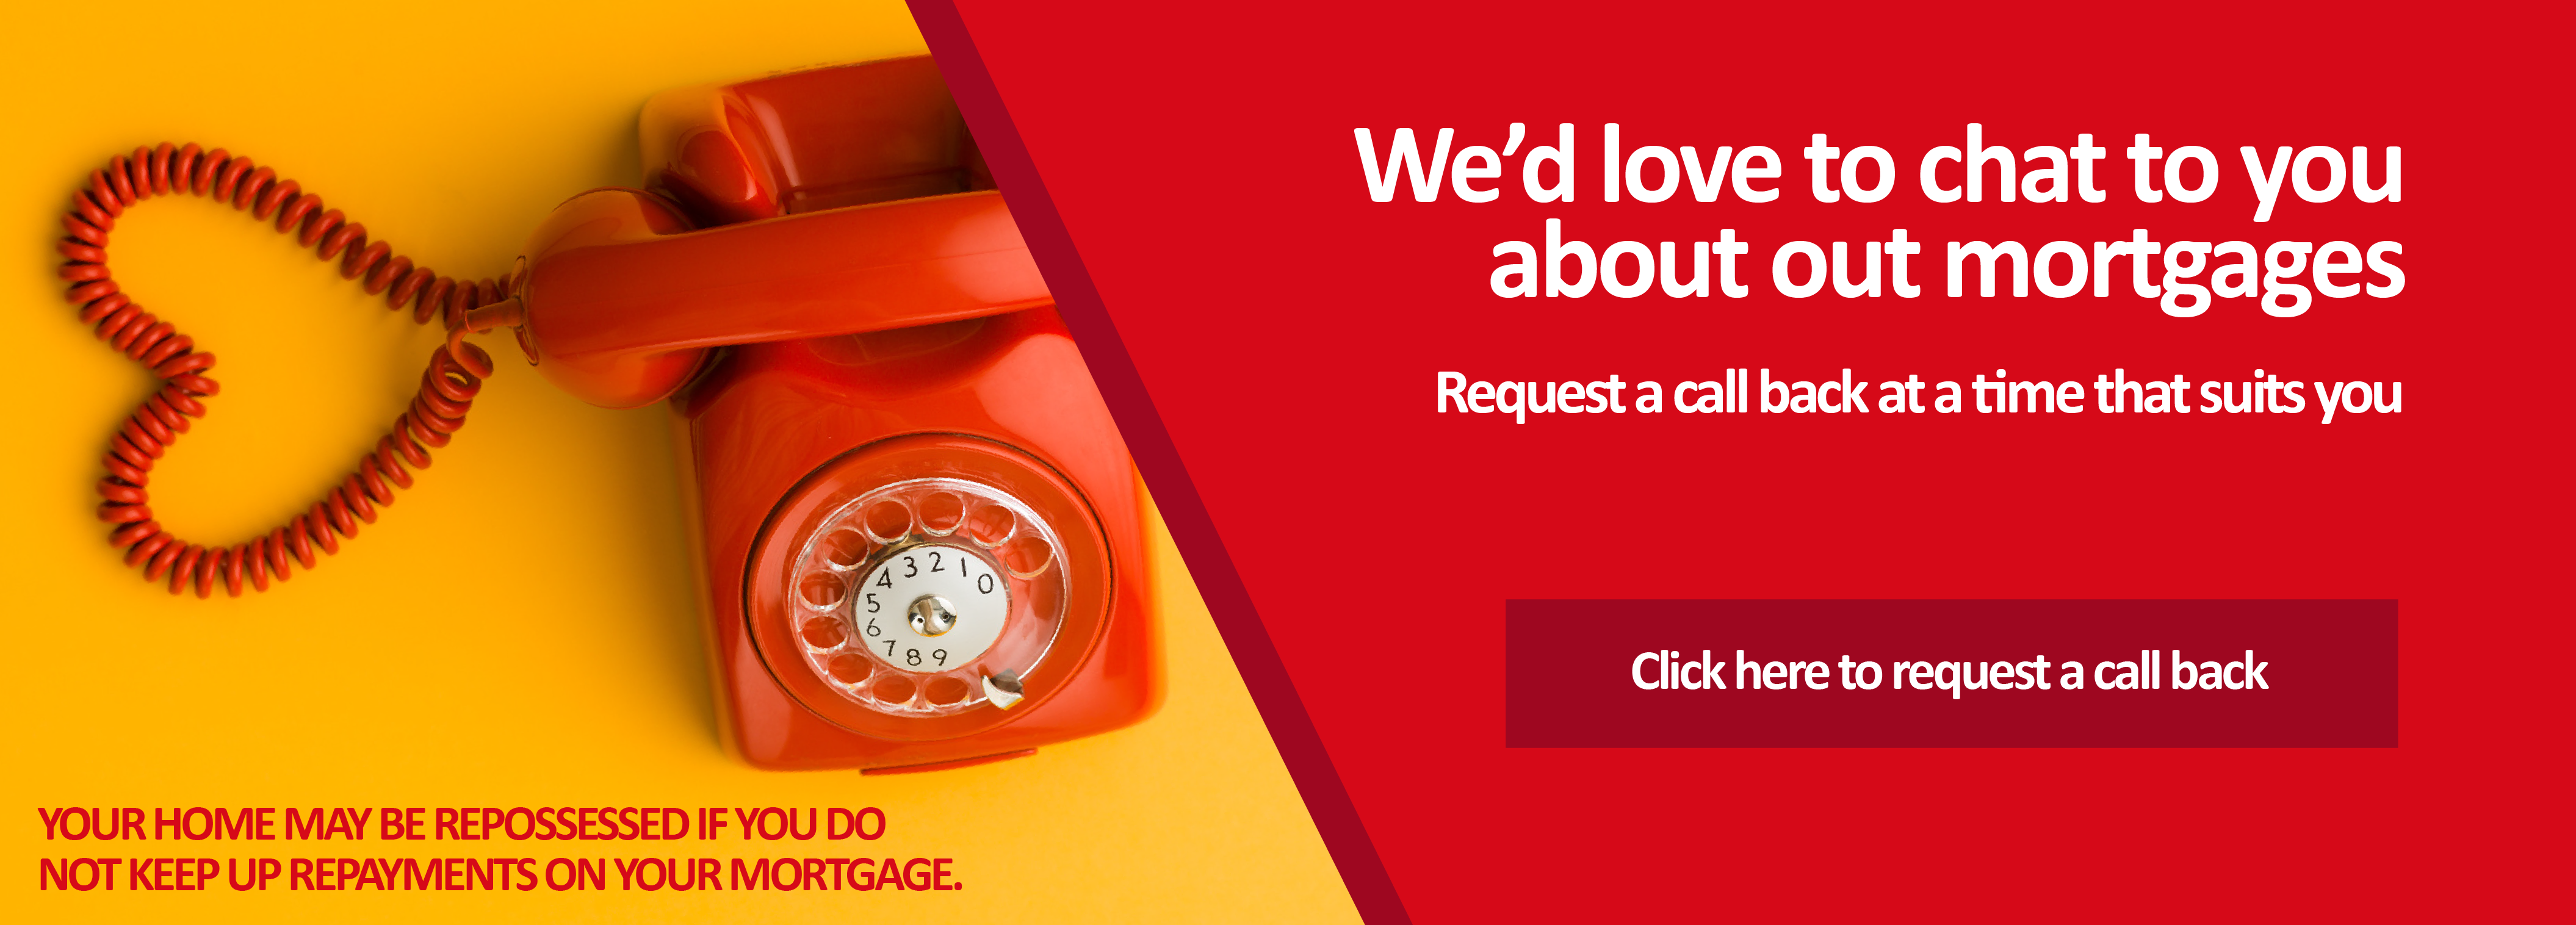 Request a call back from our team to discuss mortgages.